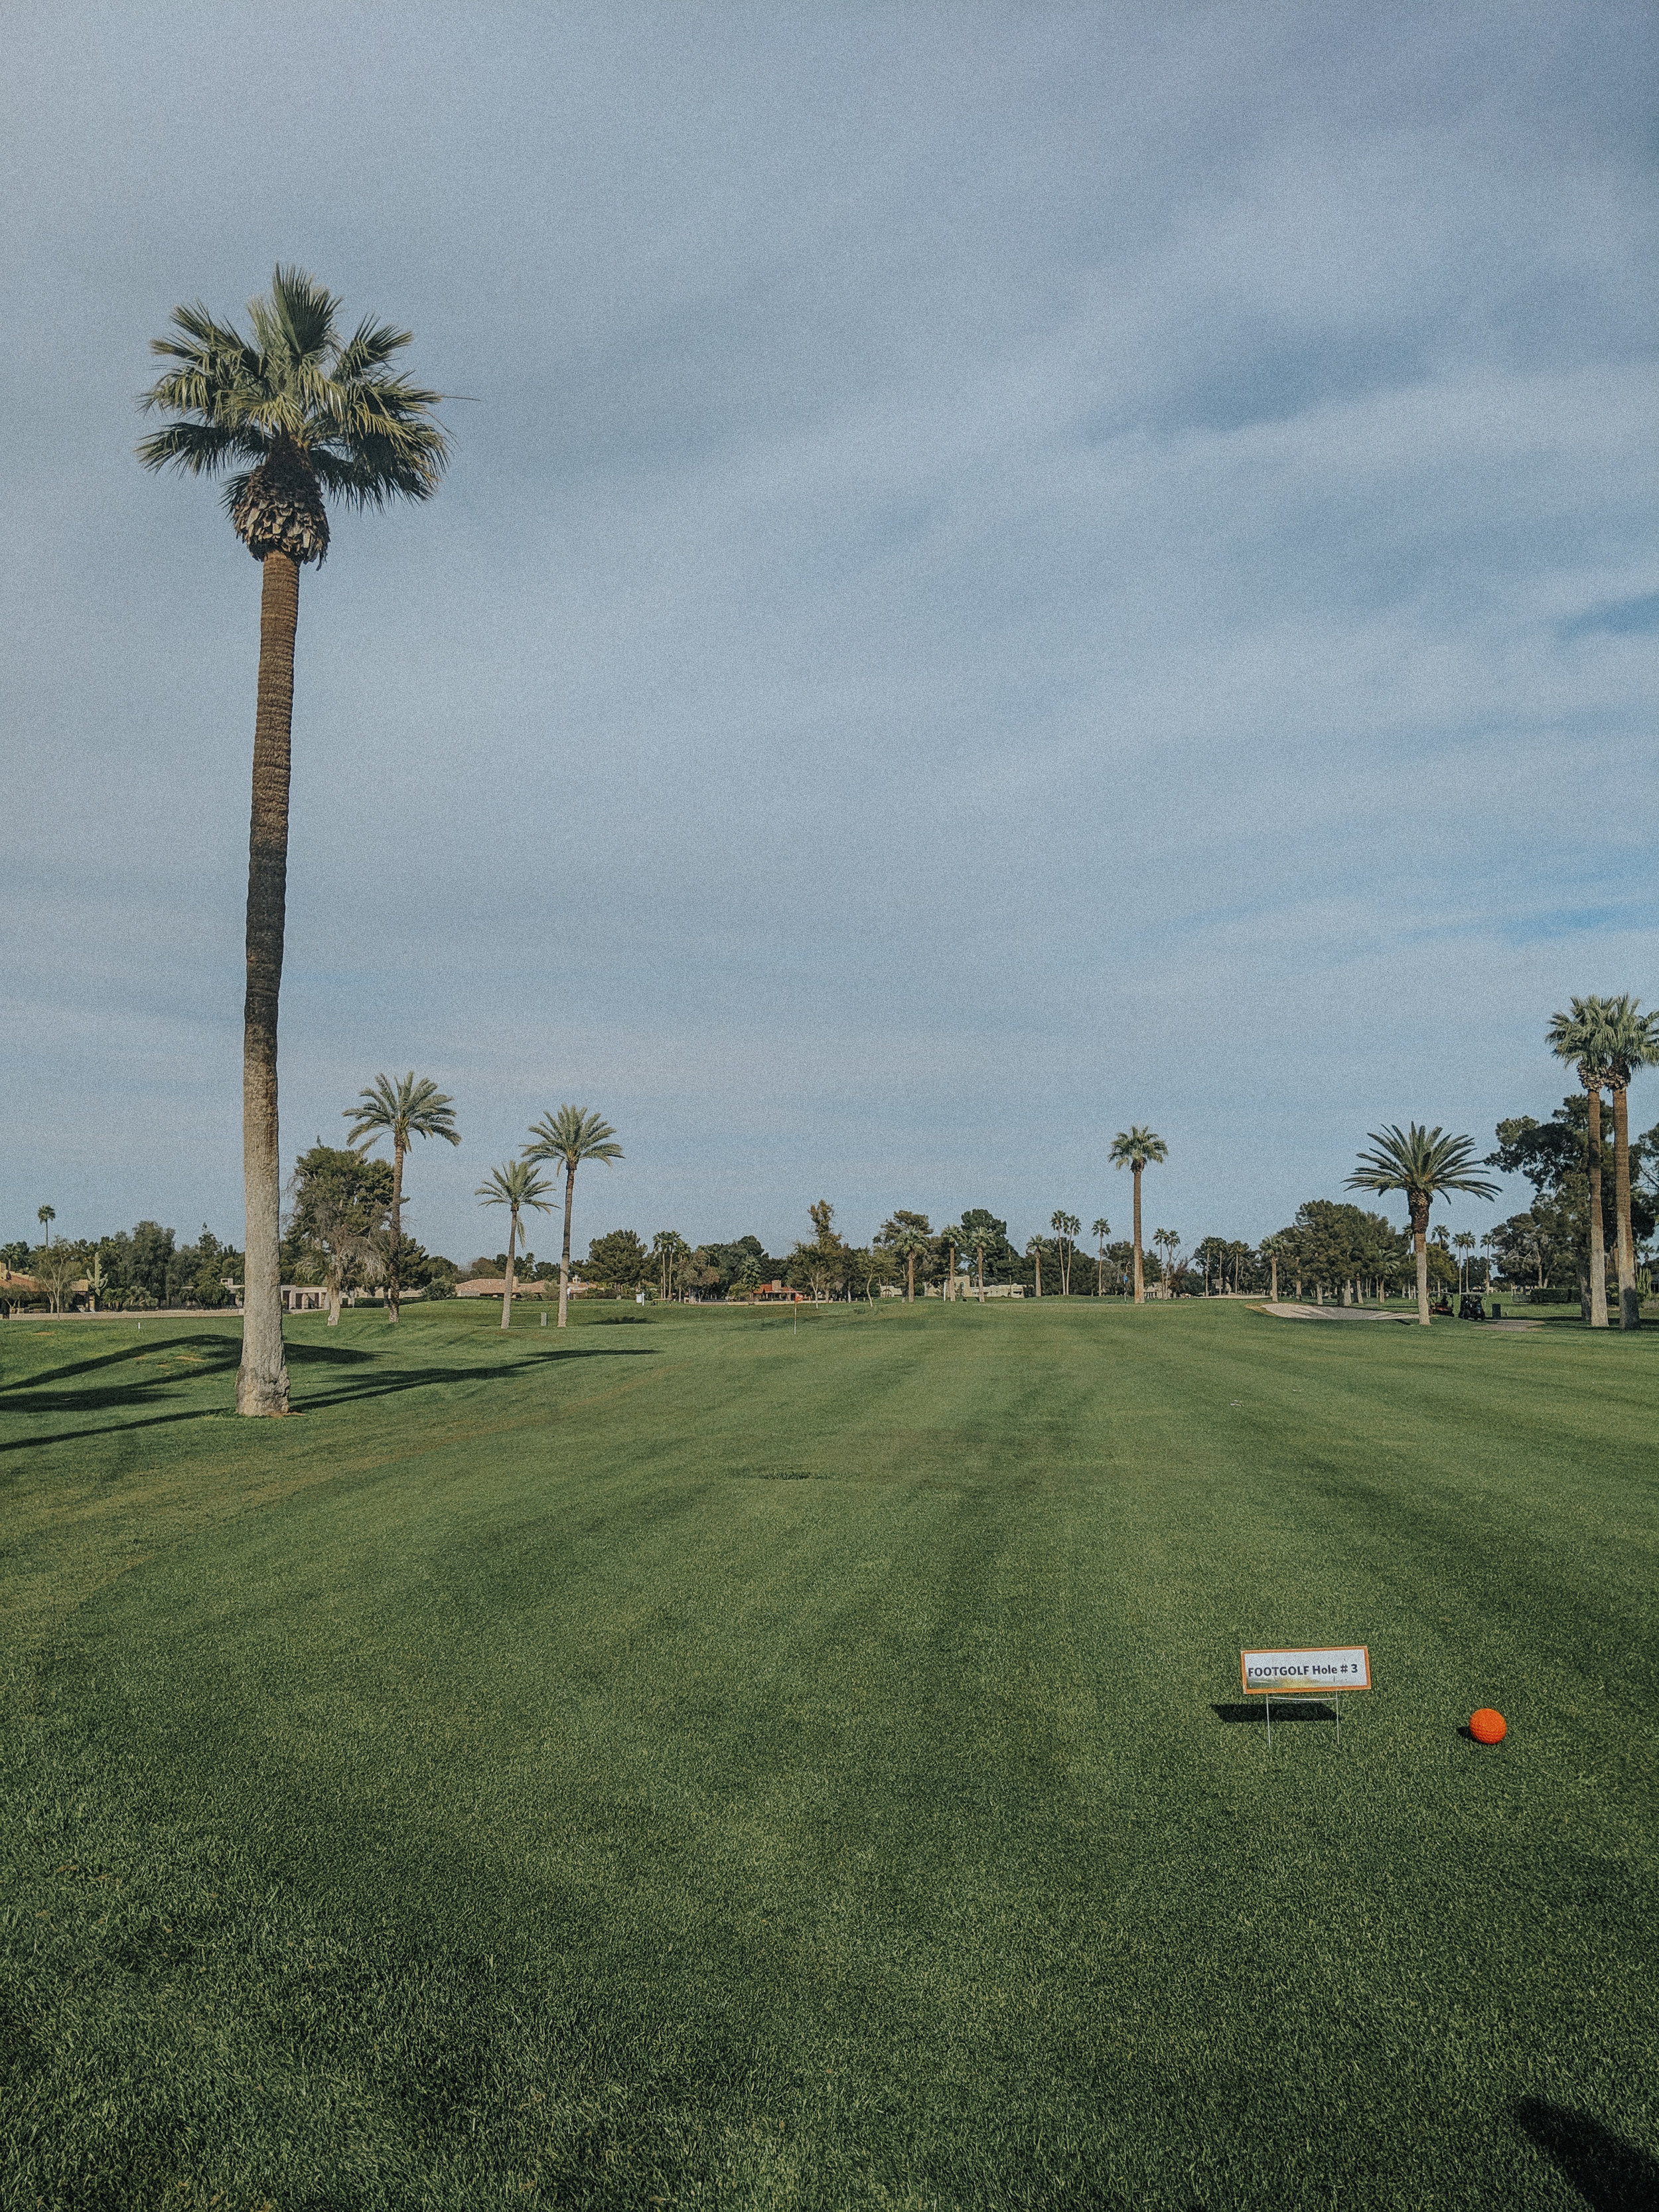 The Wigwam's golf course has a foot golf course with 18 holes!!